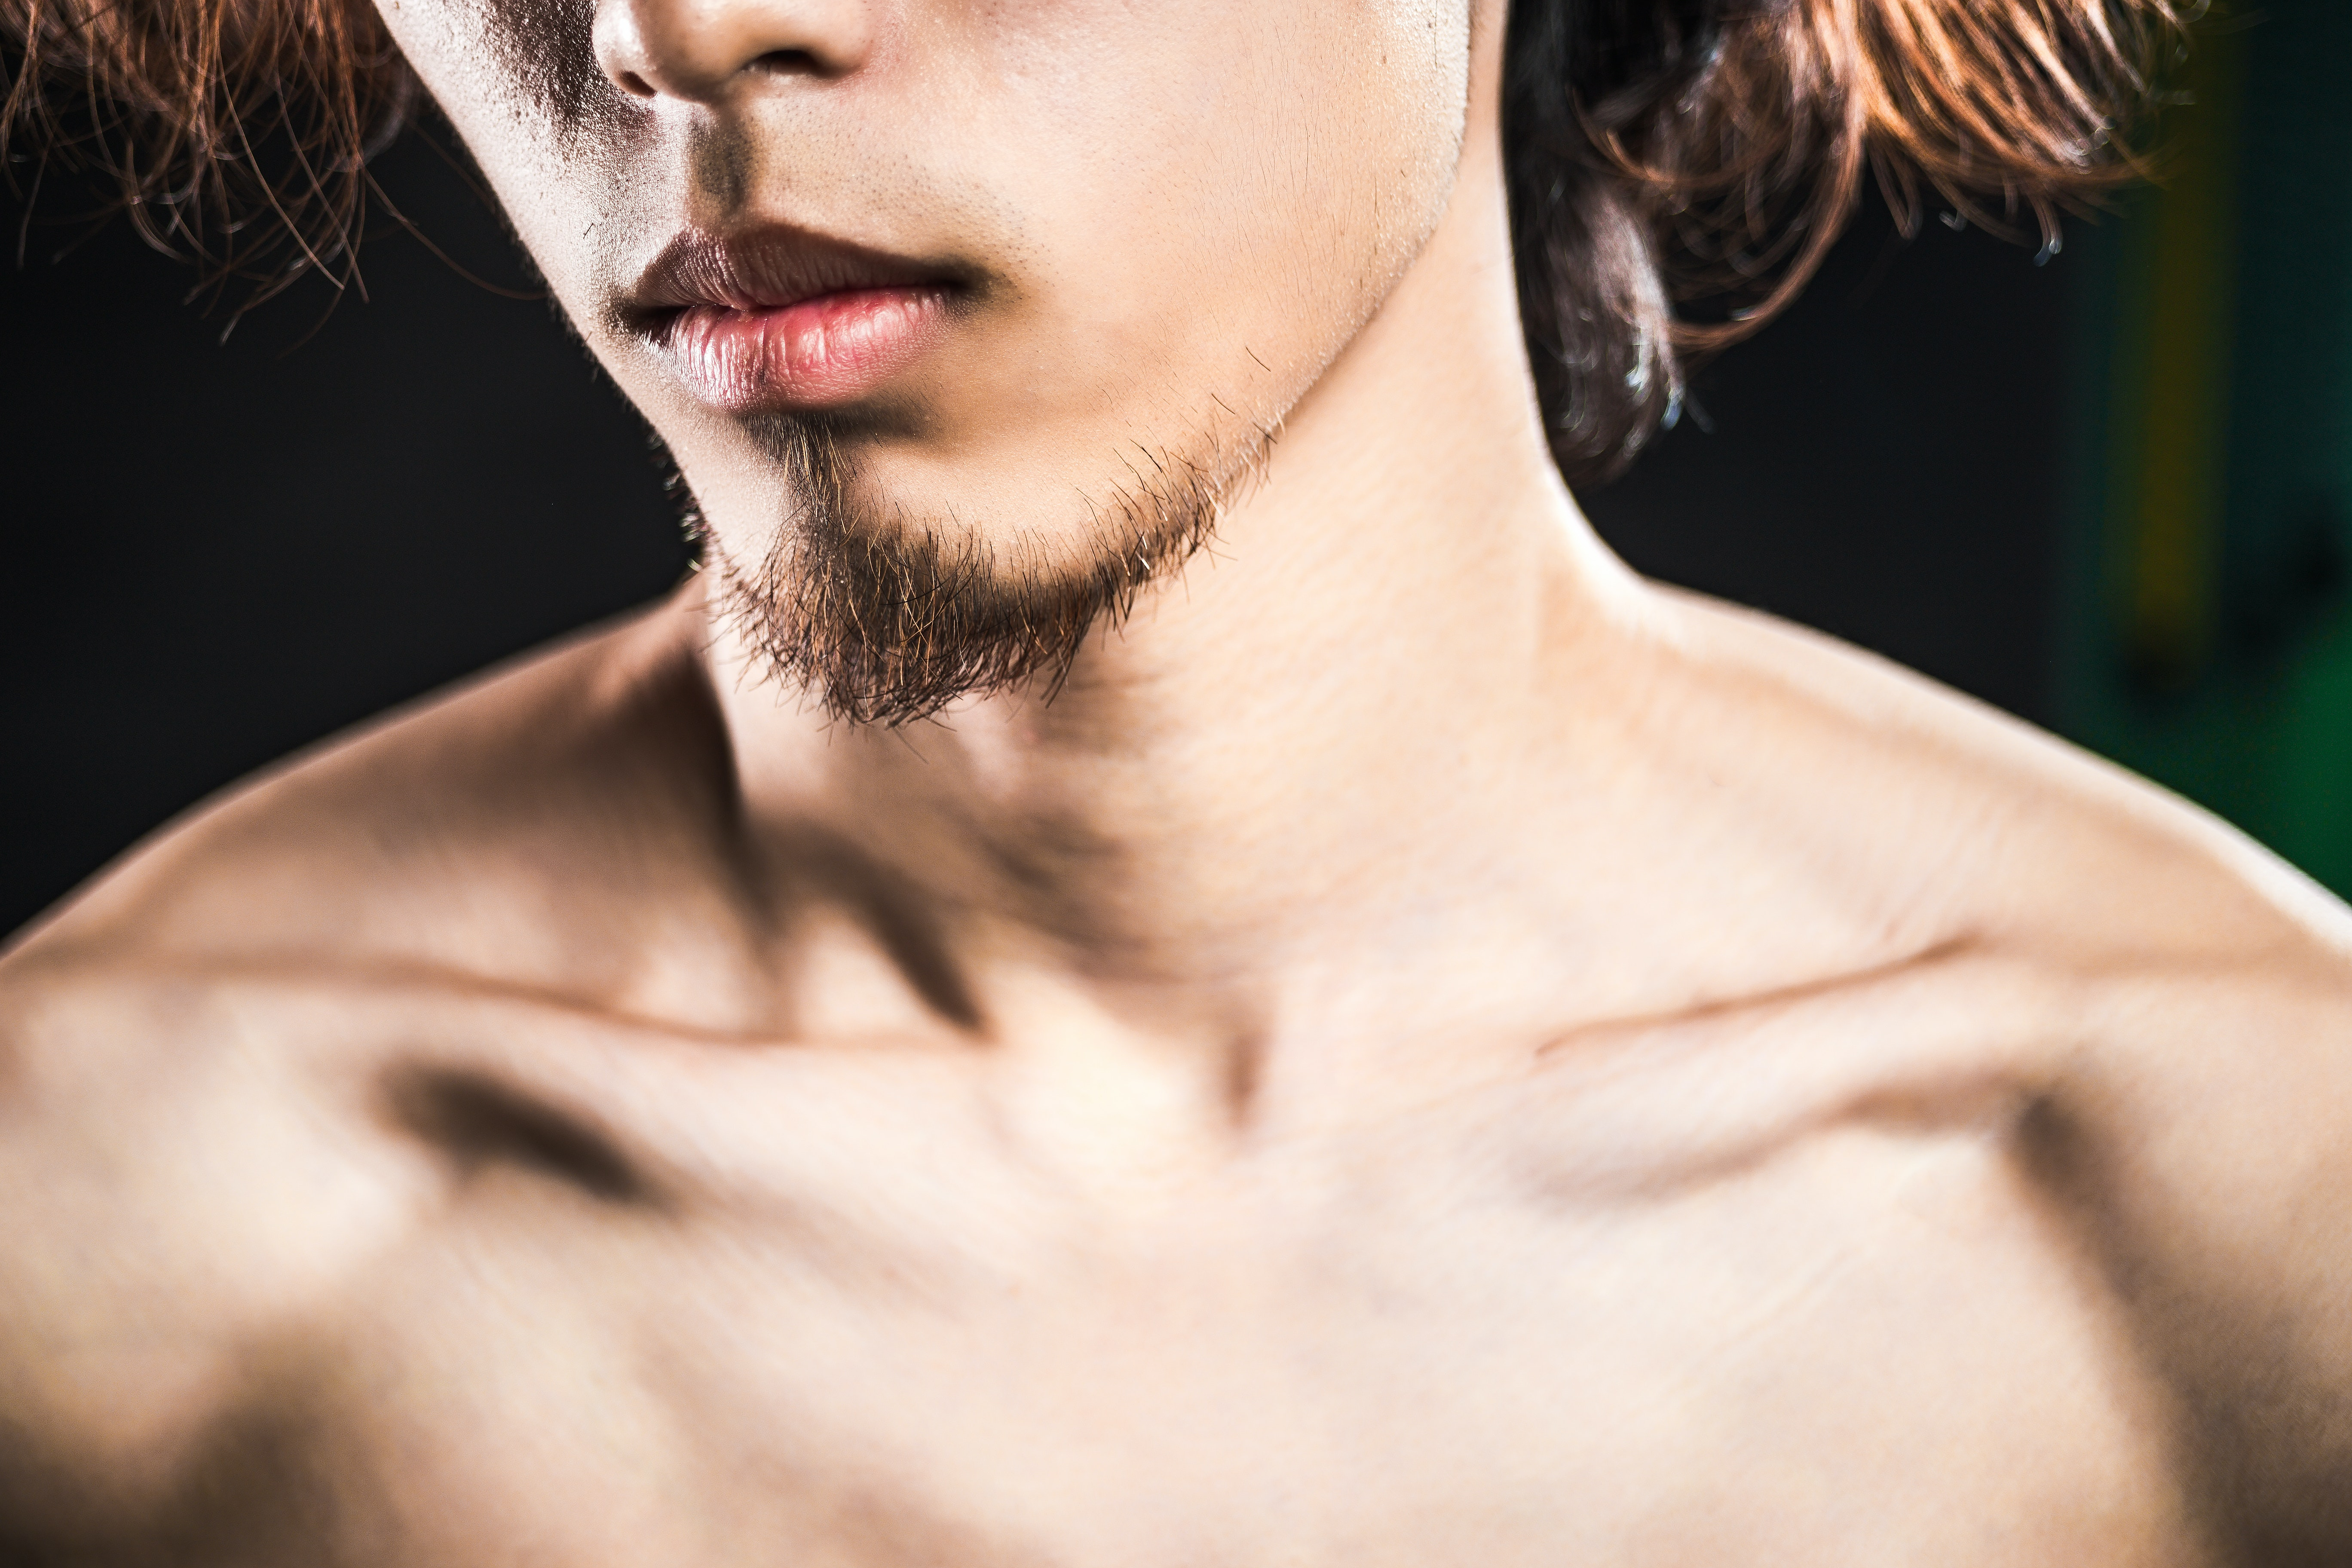 An image depicting a person suffering from collarbone pain symptoms